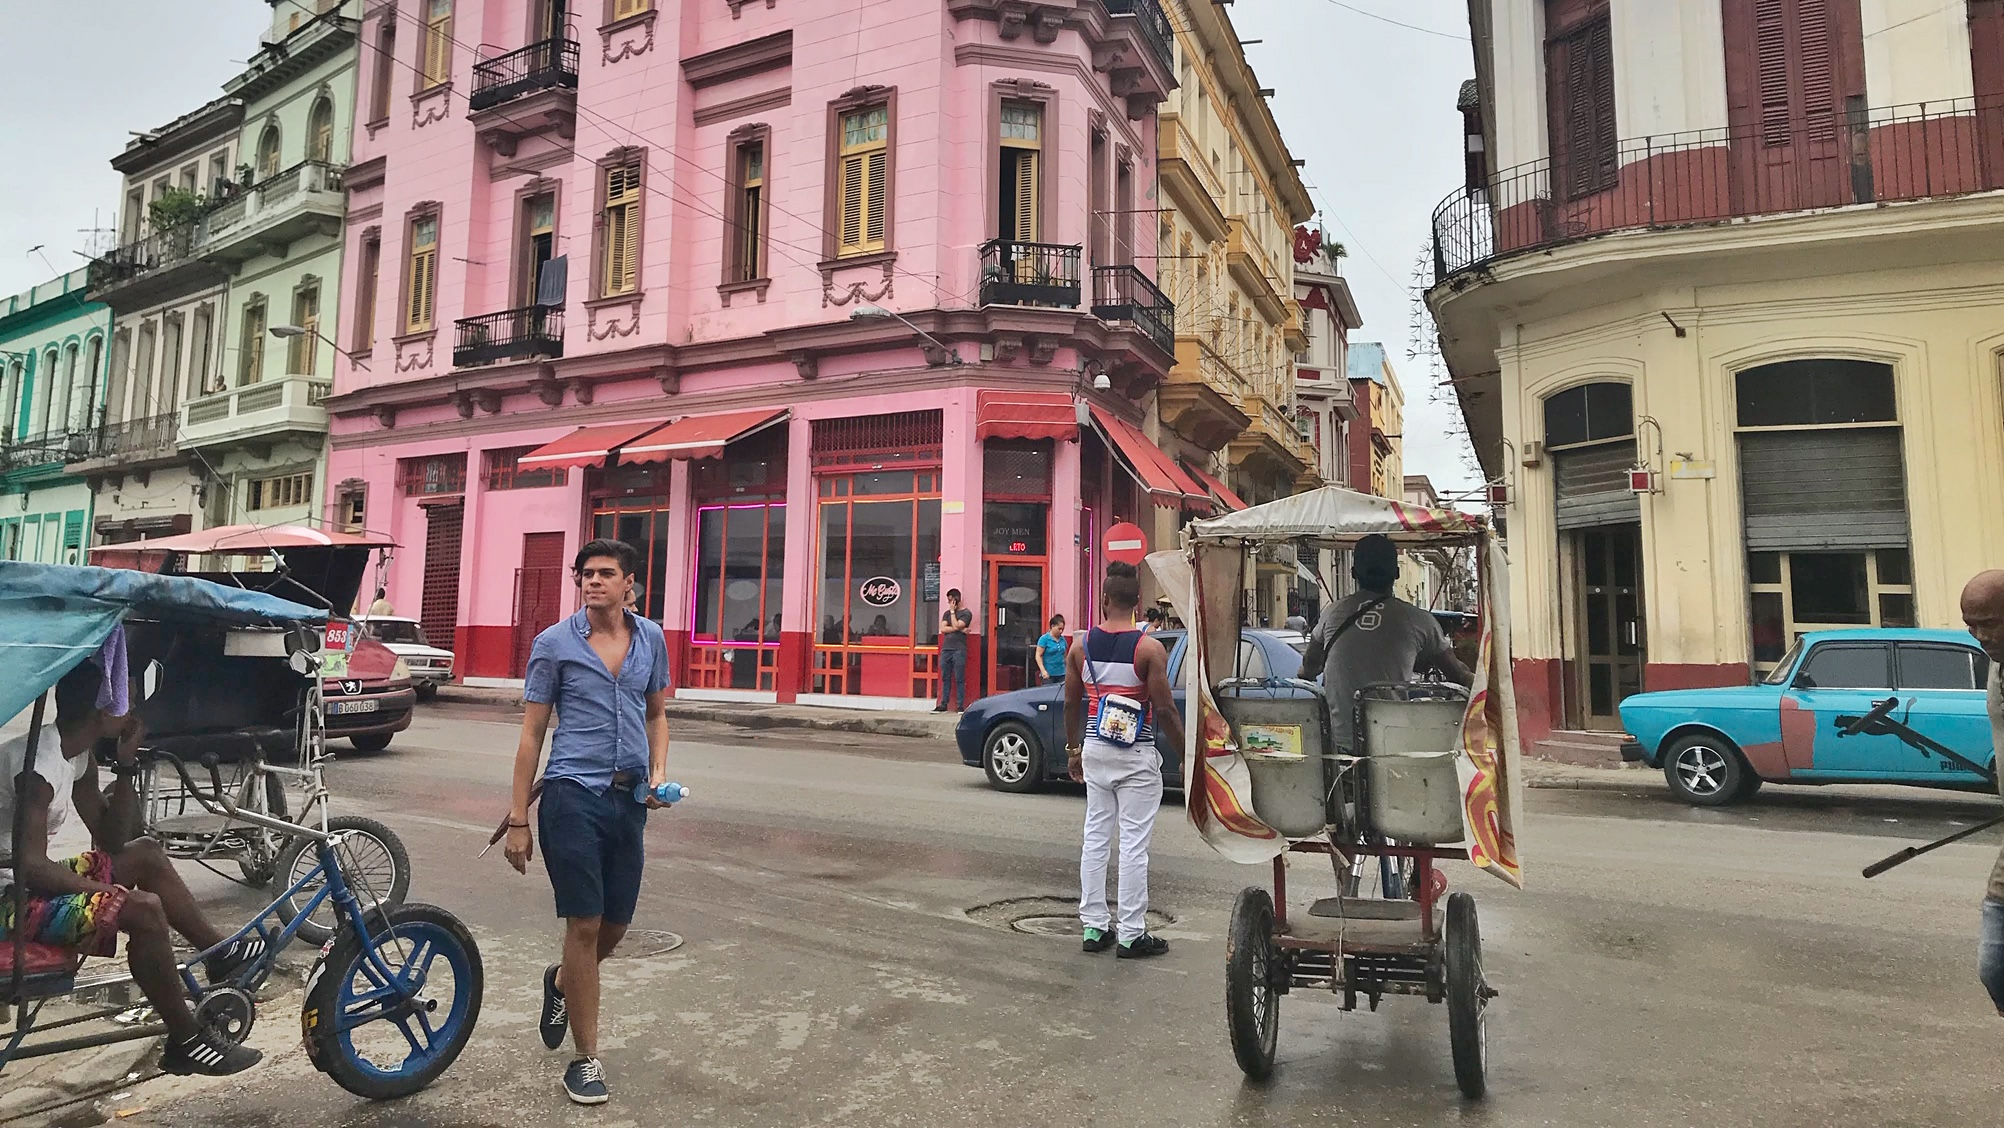 friendly-touring-cuba-airbnb-hotel